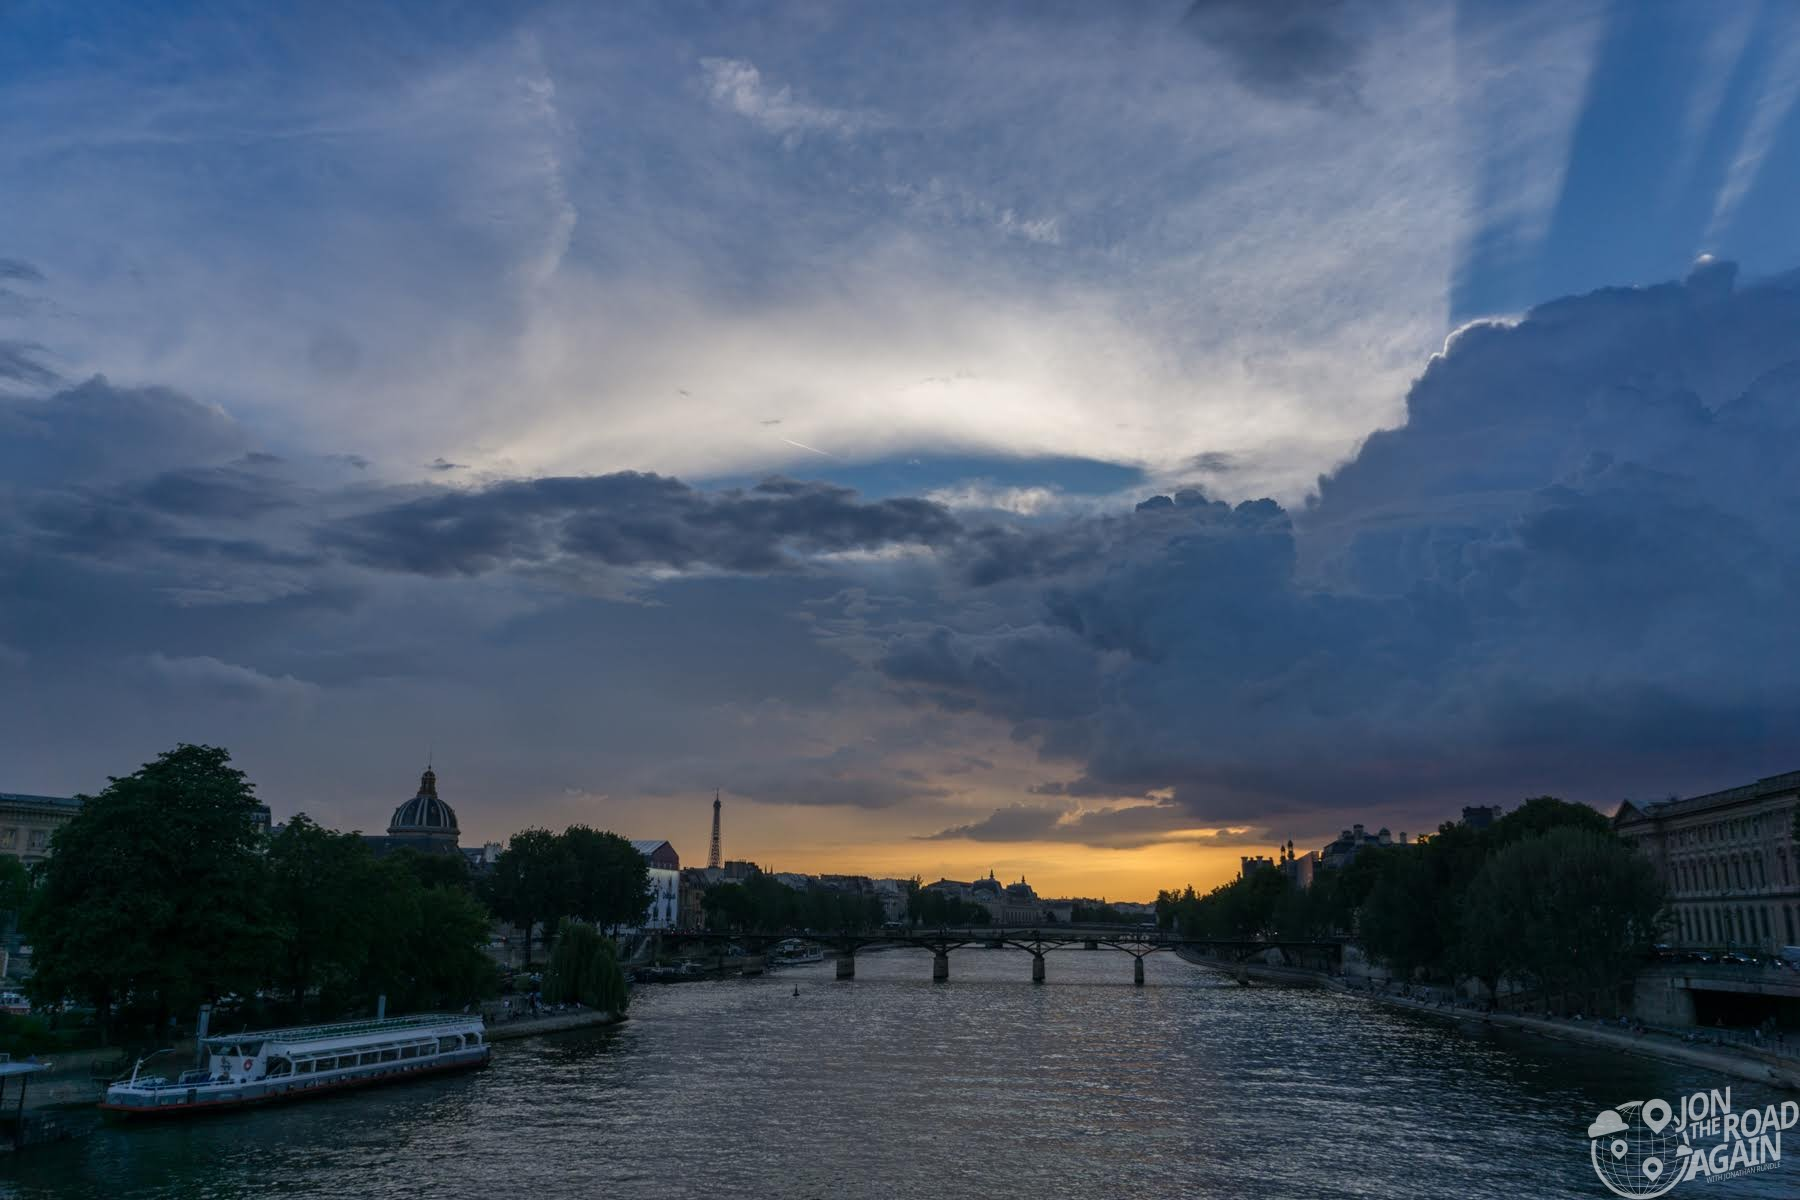 Sunset on the River Seine